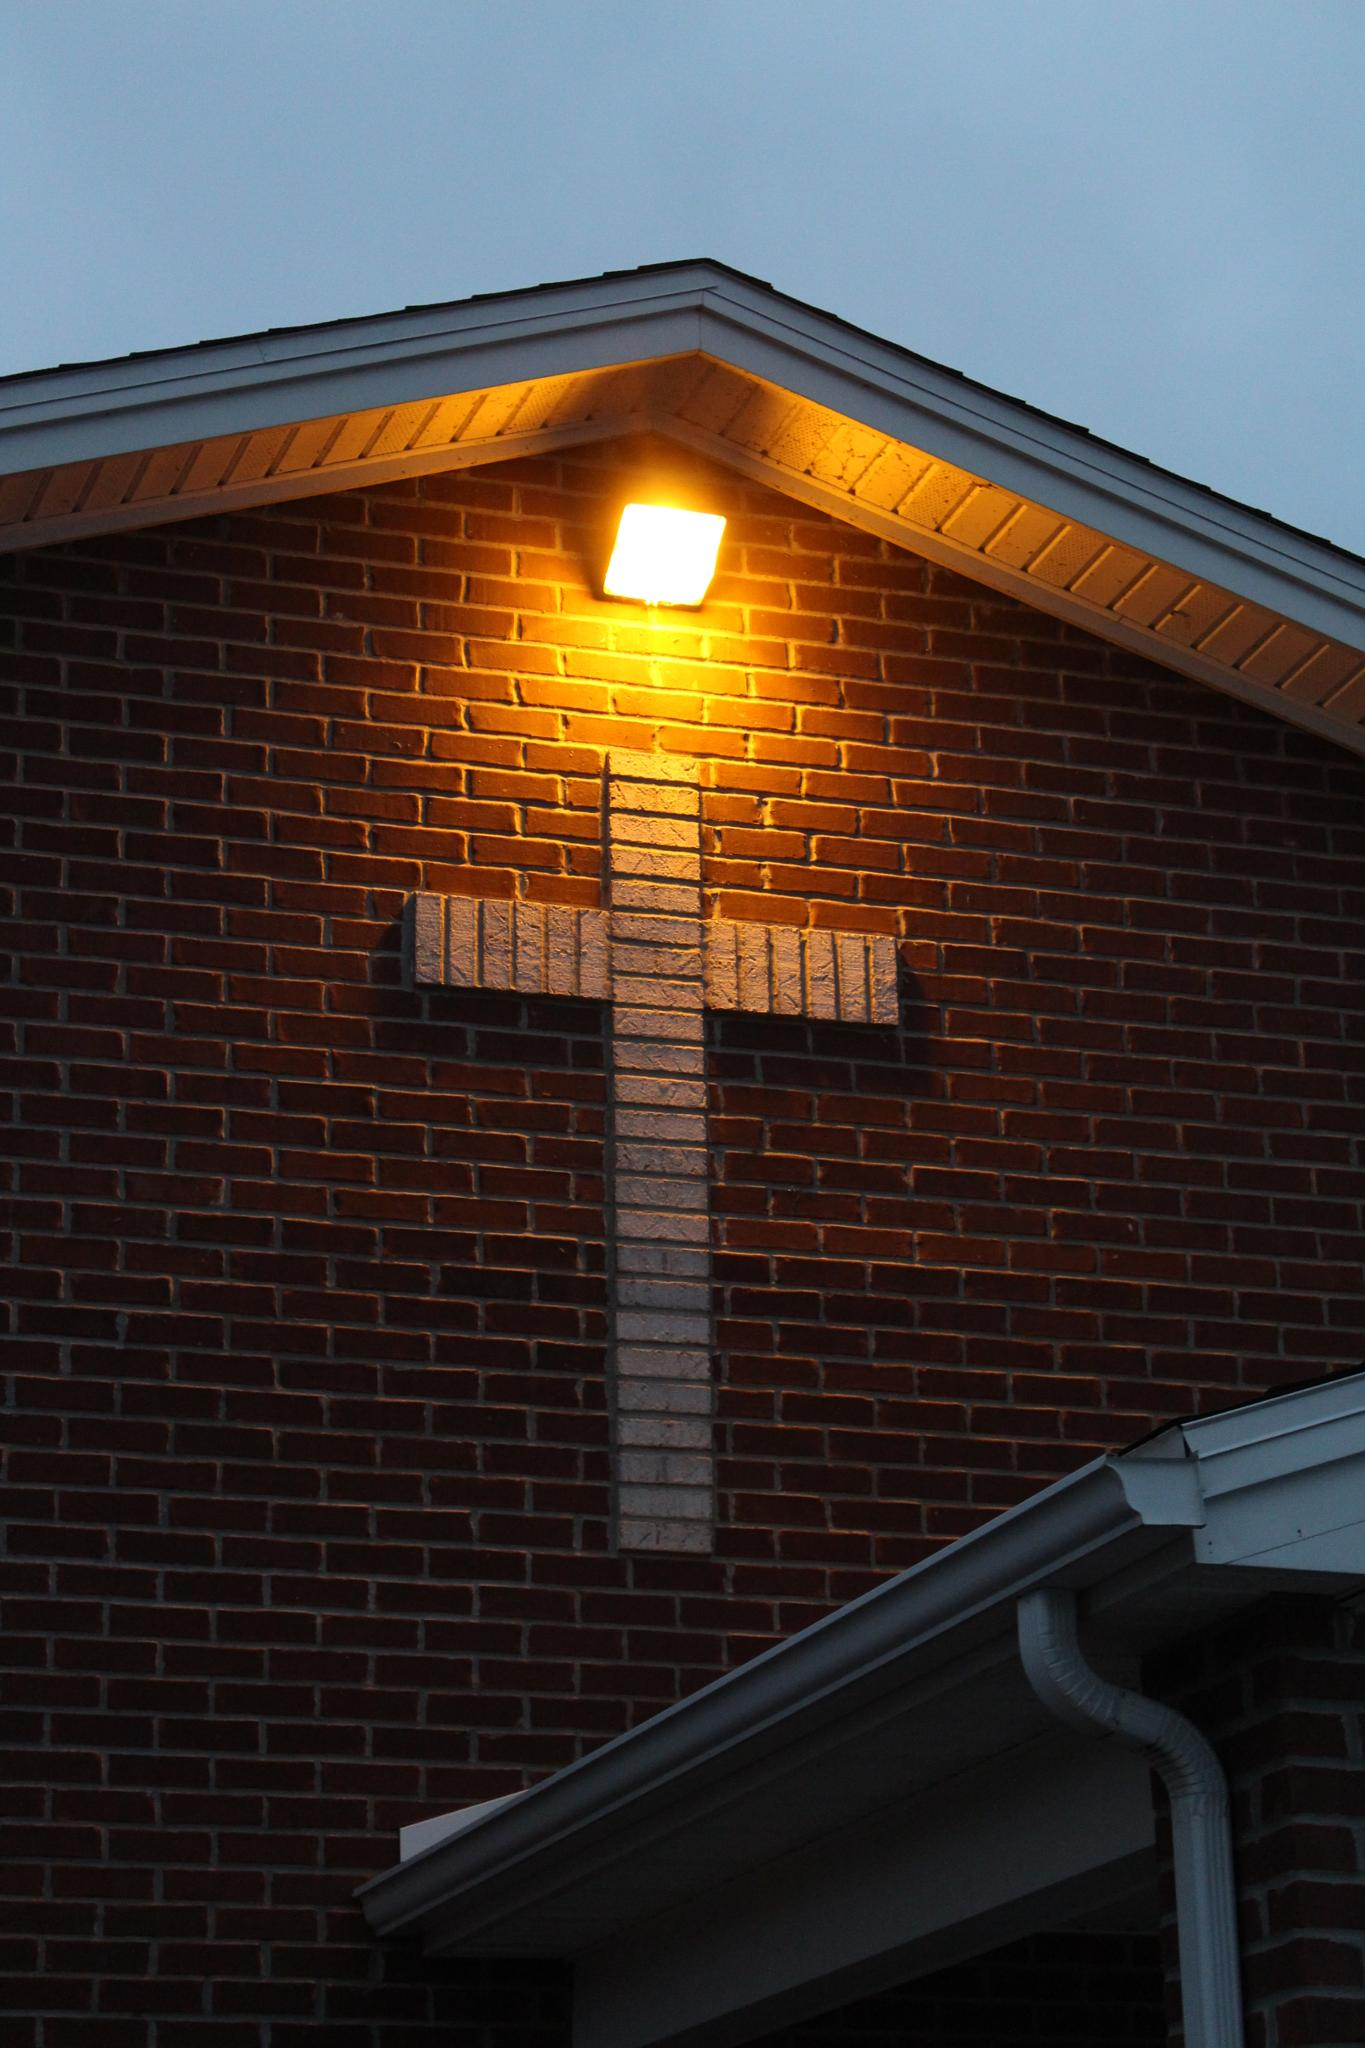 Cross in the Light by Charlie DeLacey